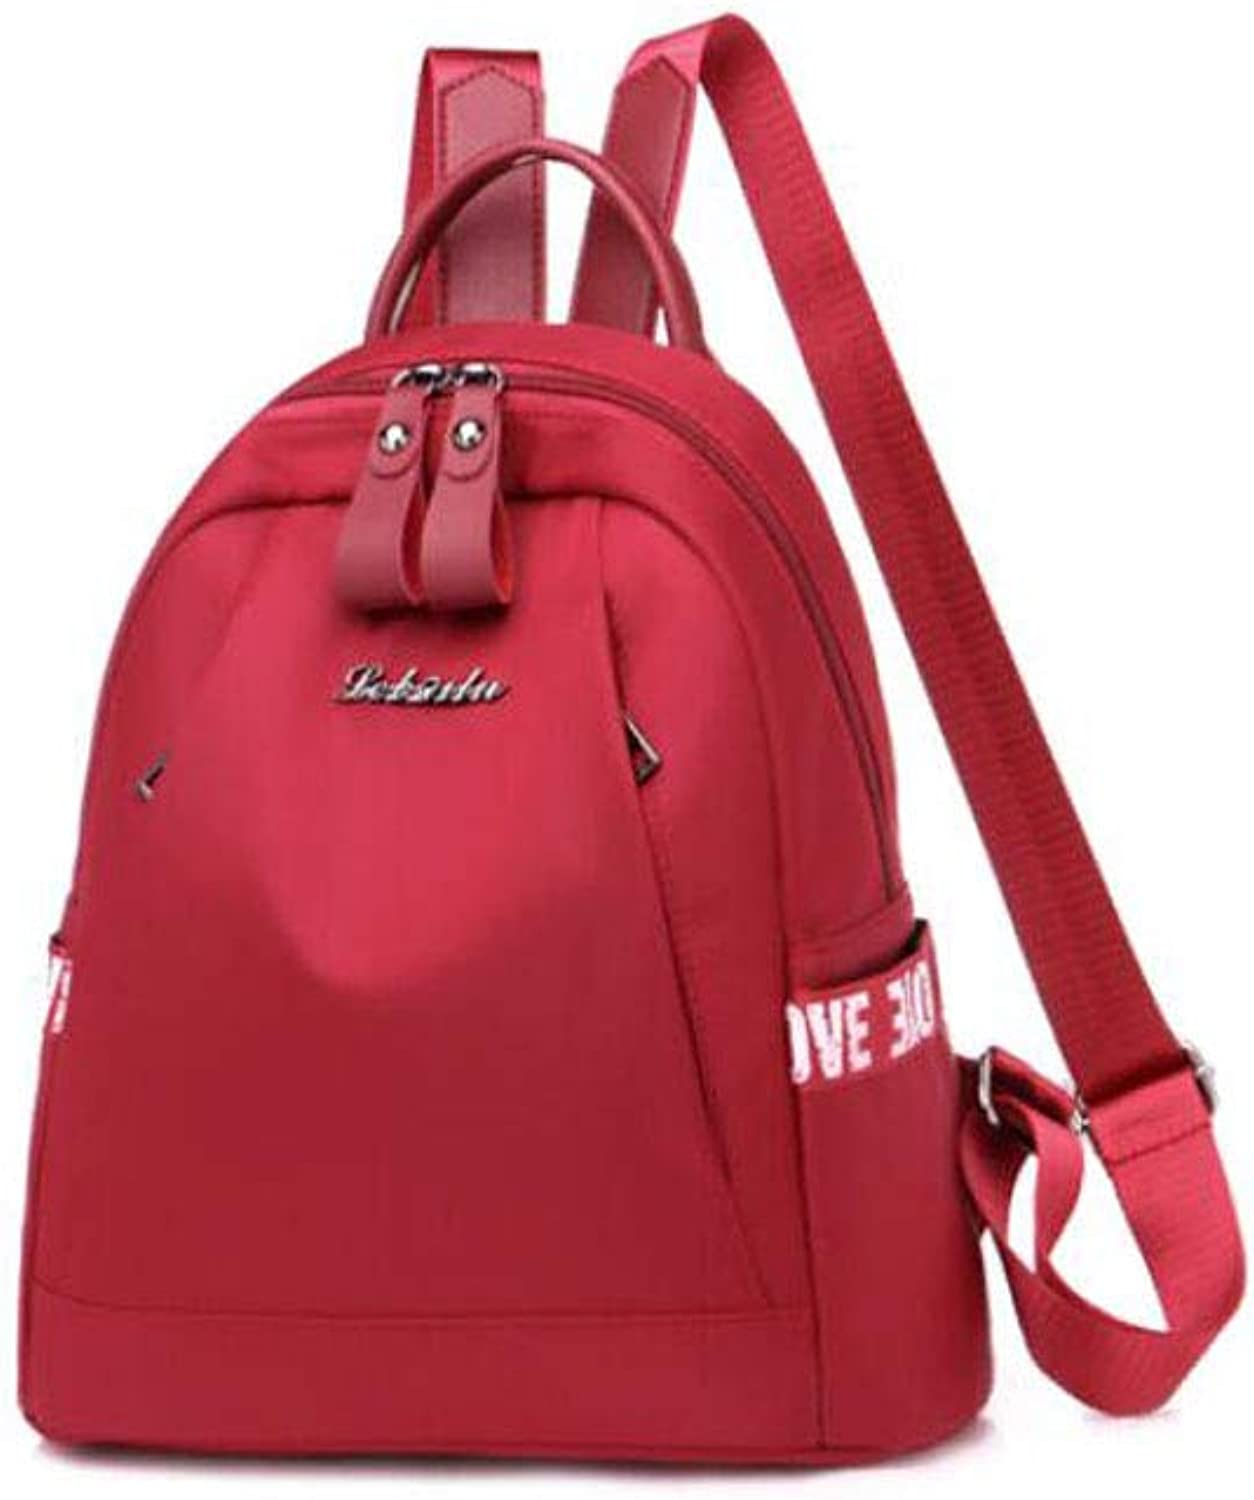 HENG Women's Casual Nylon Lightweight Backpack, Red for Hiking, Traveling & Camping (color   Black)